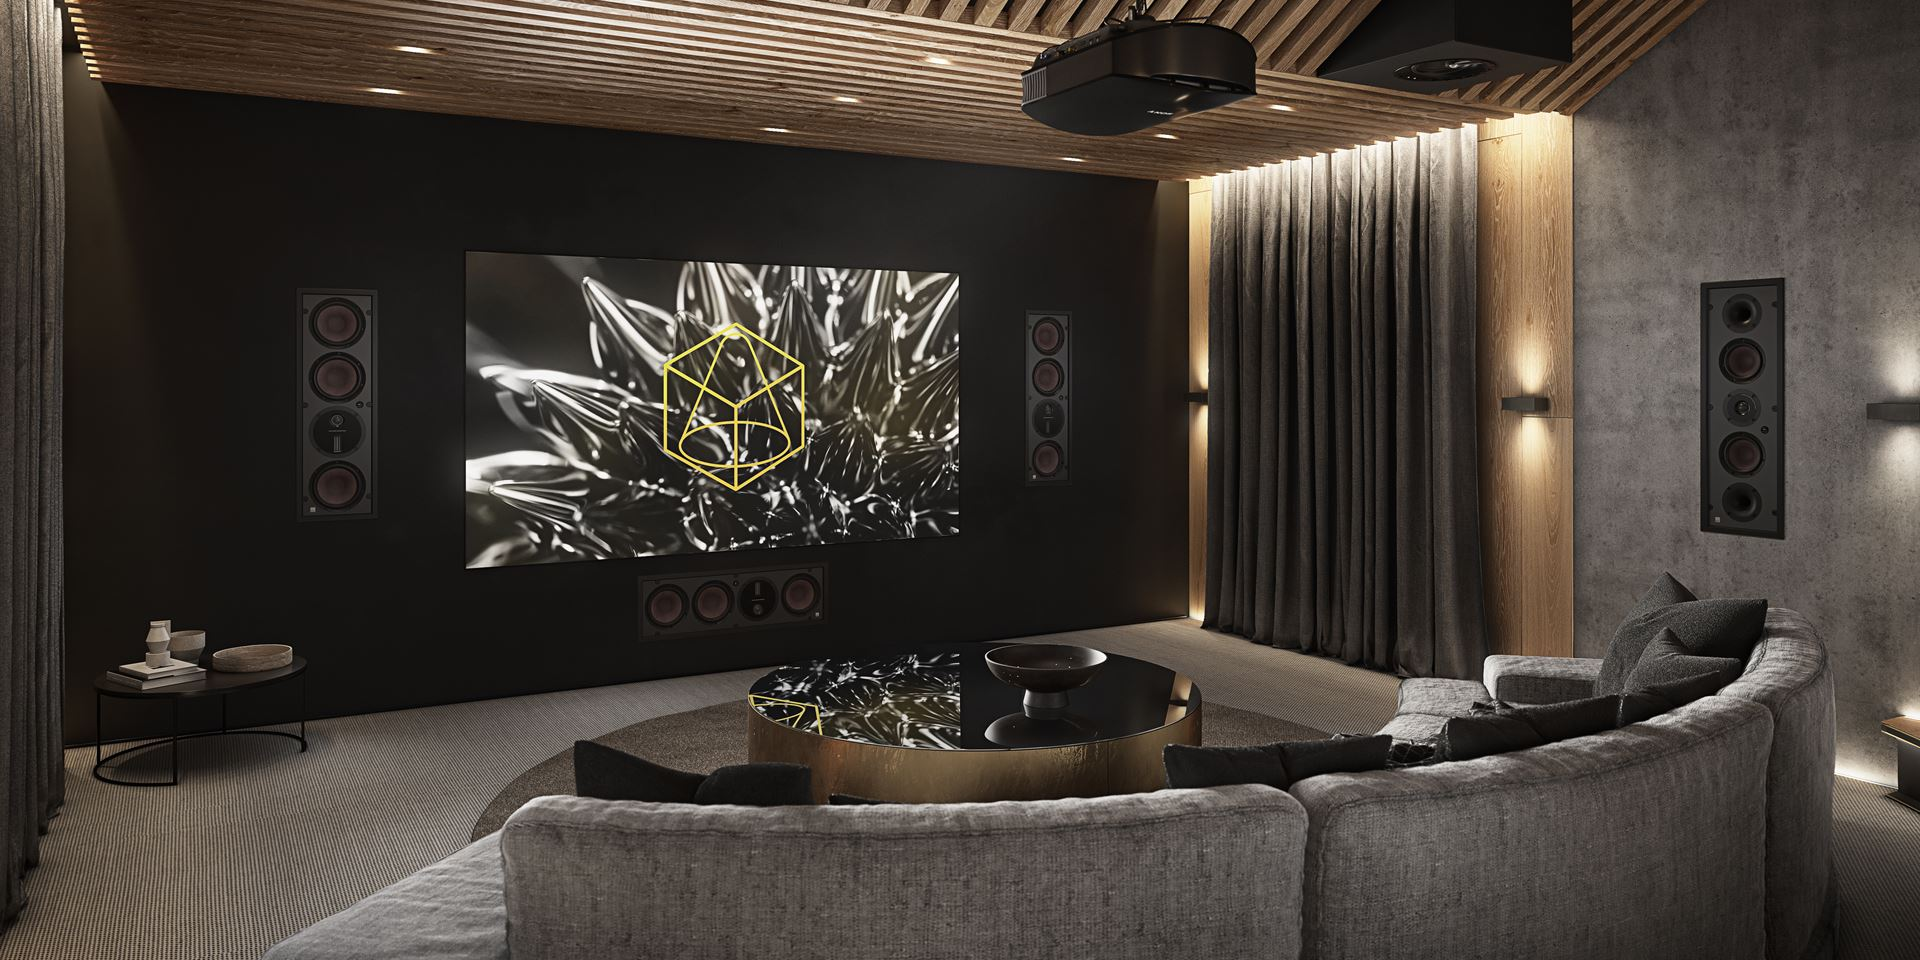 Home cinema room with projector screen and Dali Phantom M-25 speakers